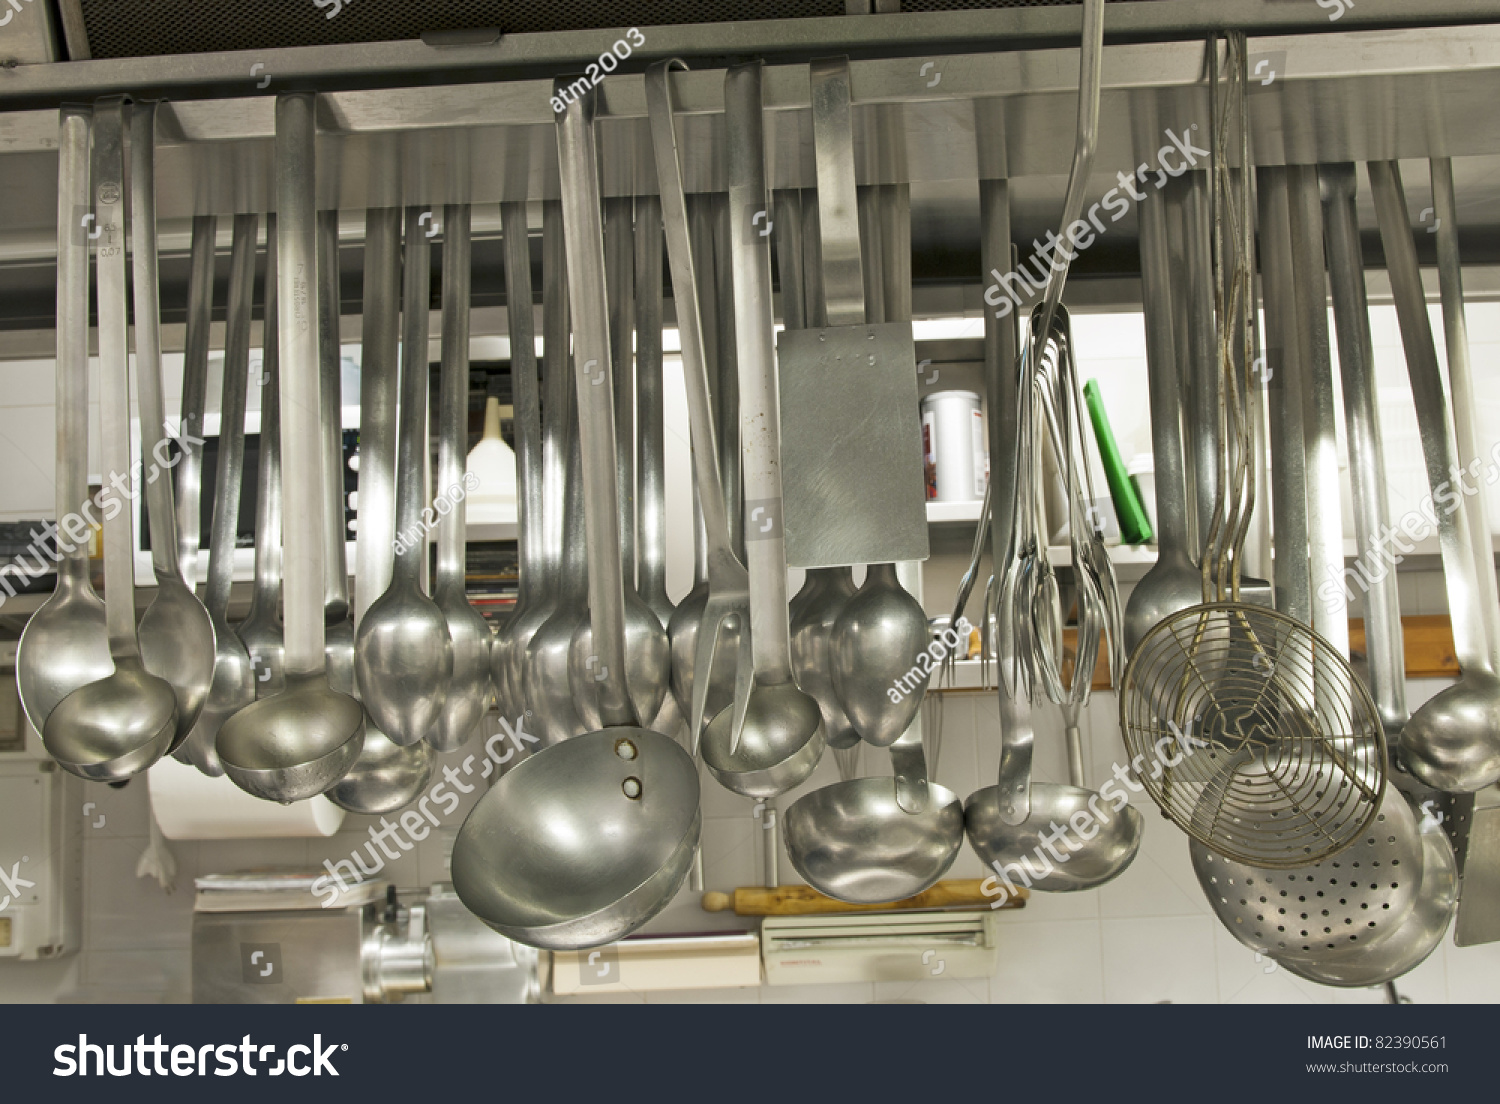 Restaurant Kitchen Utensils utensils kitchen restaurant stock photo 82390561 - shutterstock